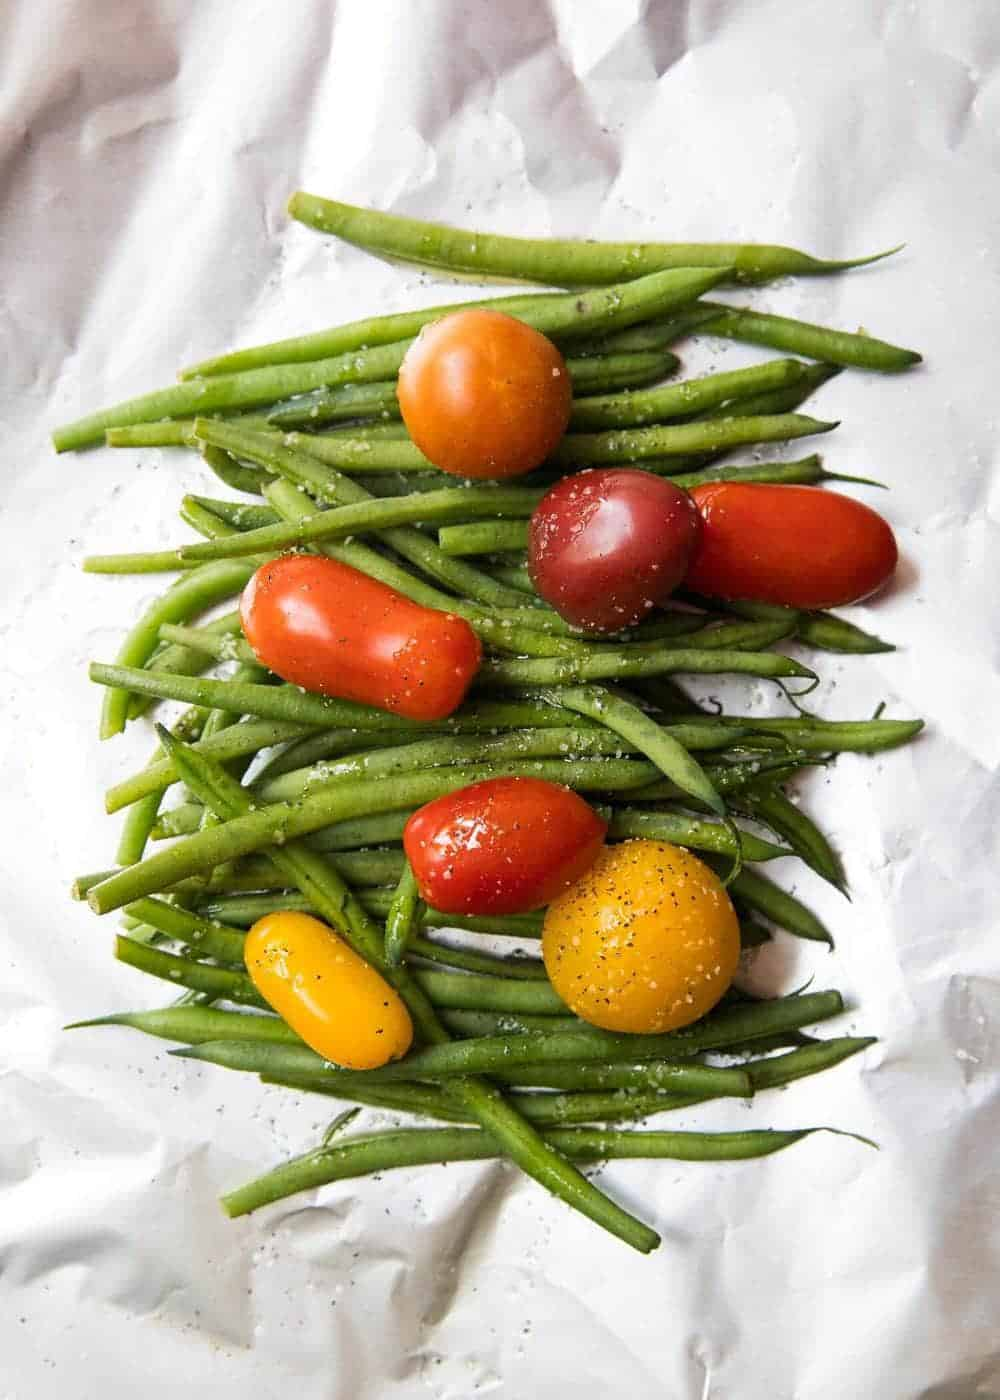 seasoned green beans and tomatoes on a piece of foil